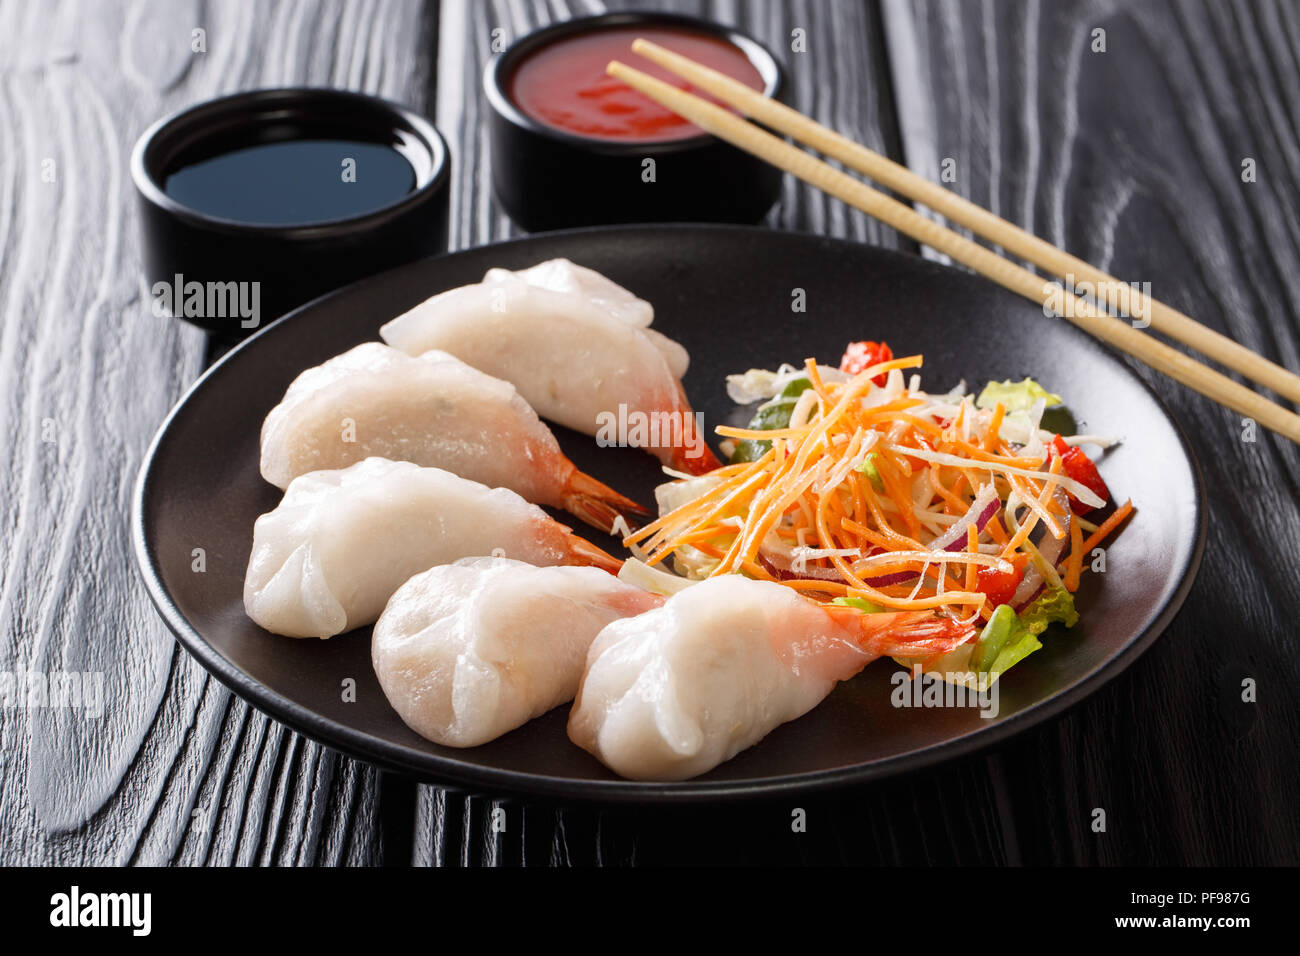 jiaozi, gyoza dumplings with prawns close-up served with vegetable and soy and tomato sauces on the table. horizontal - Stock Image